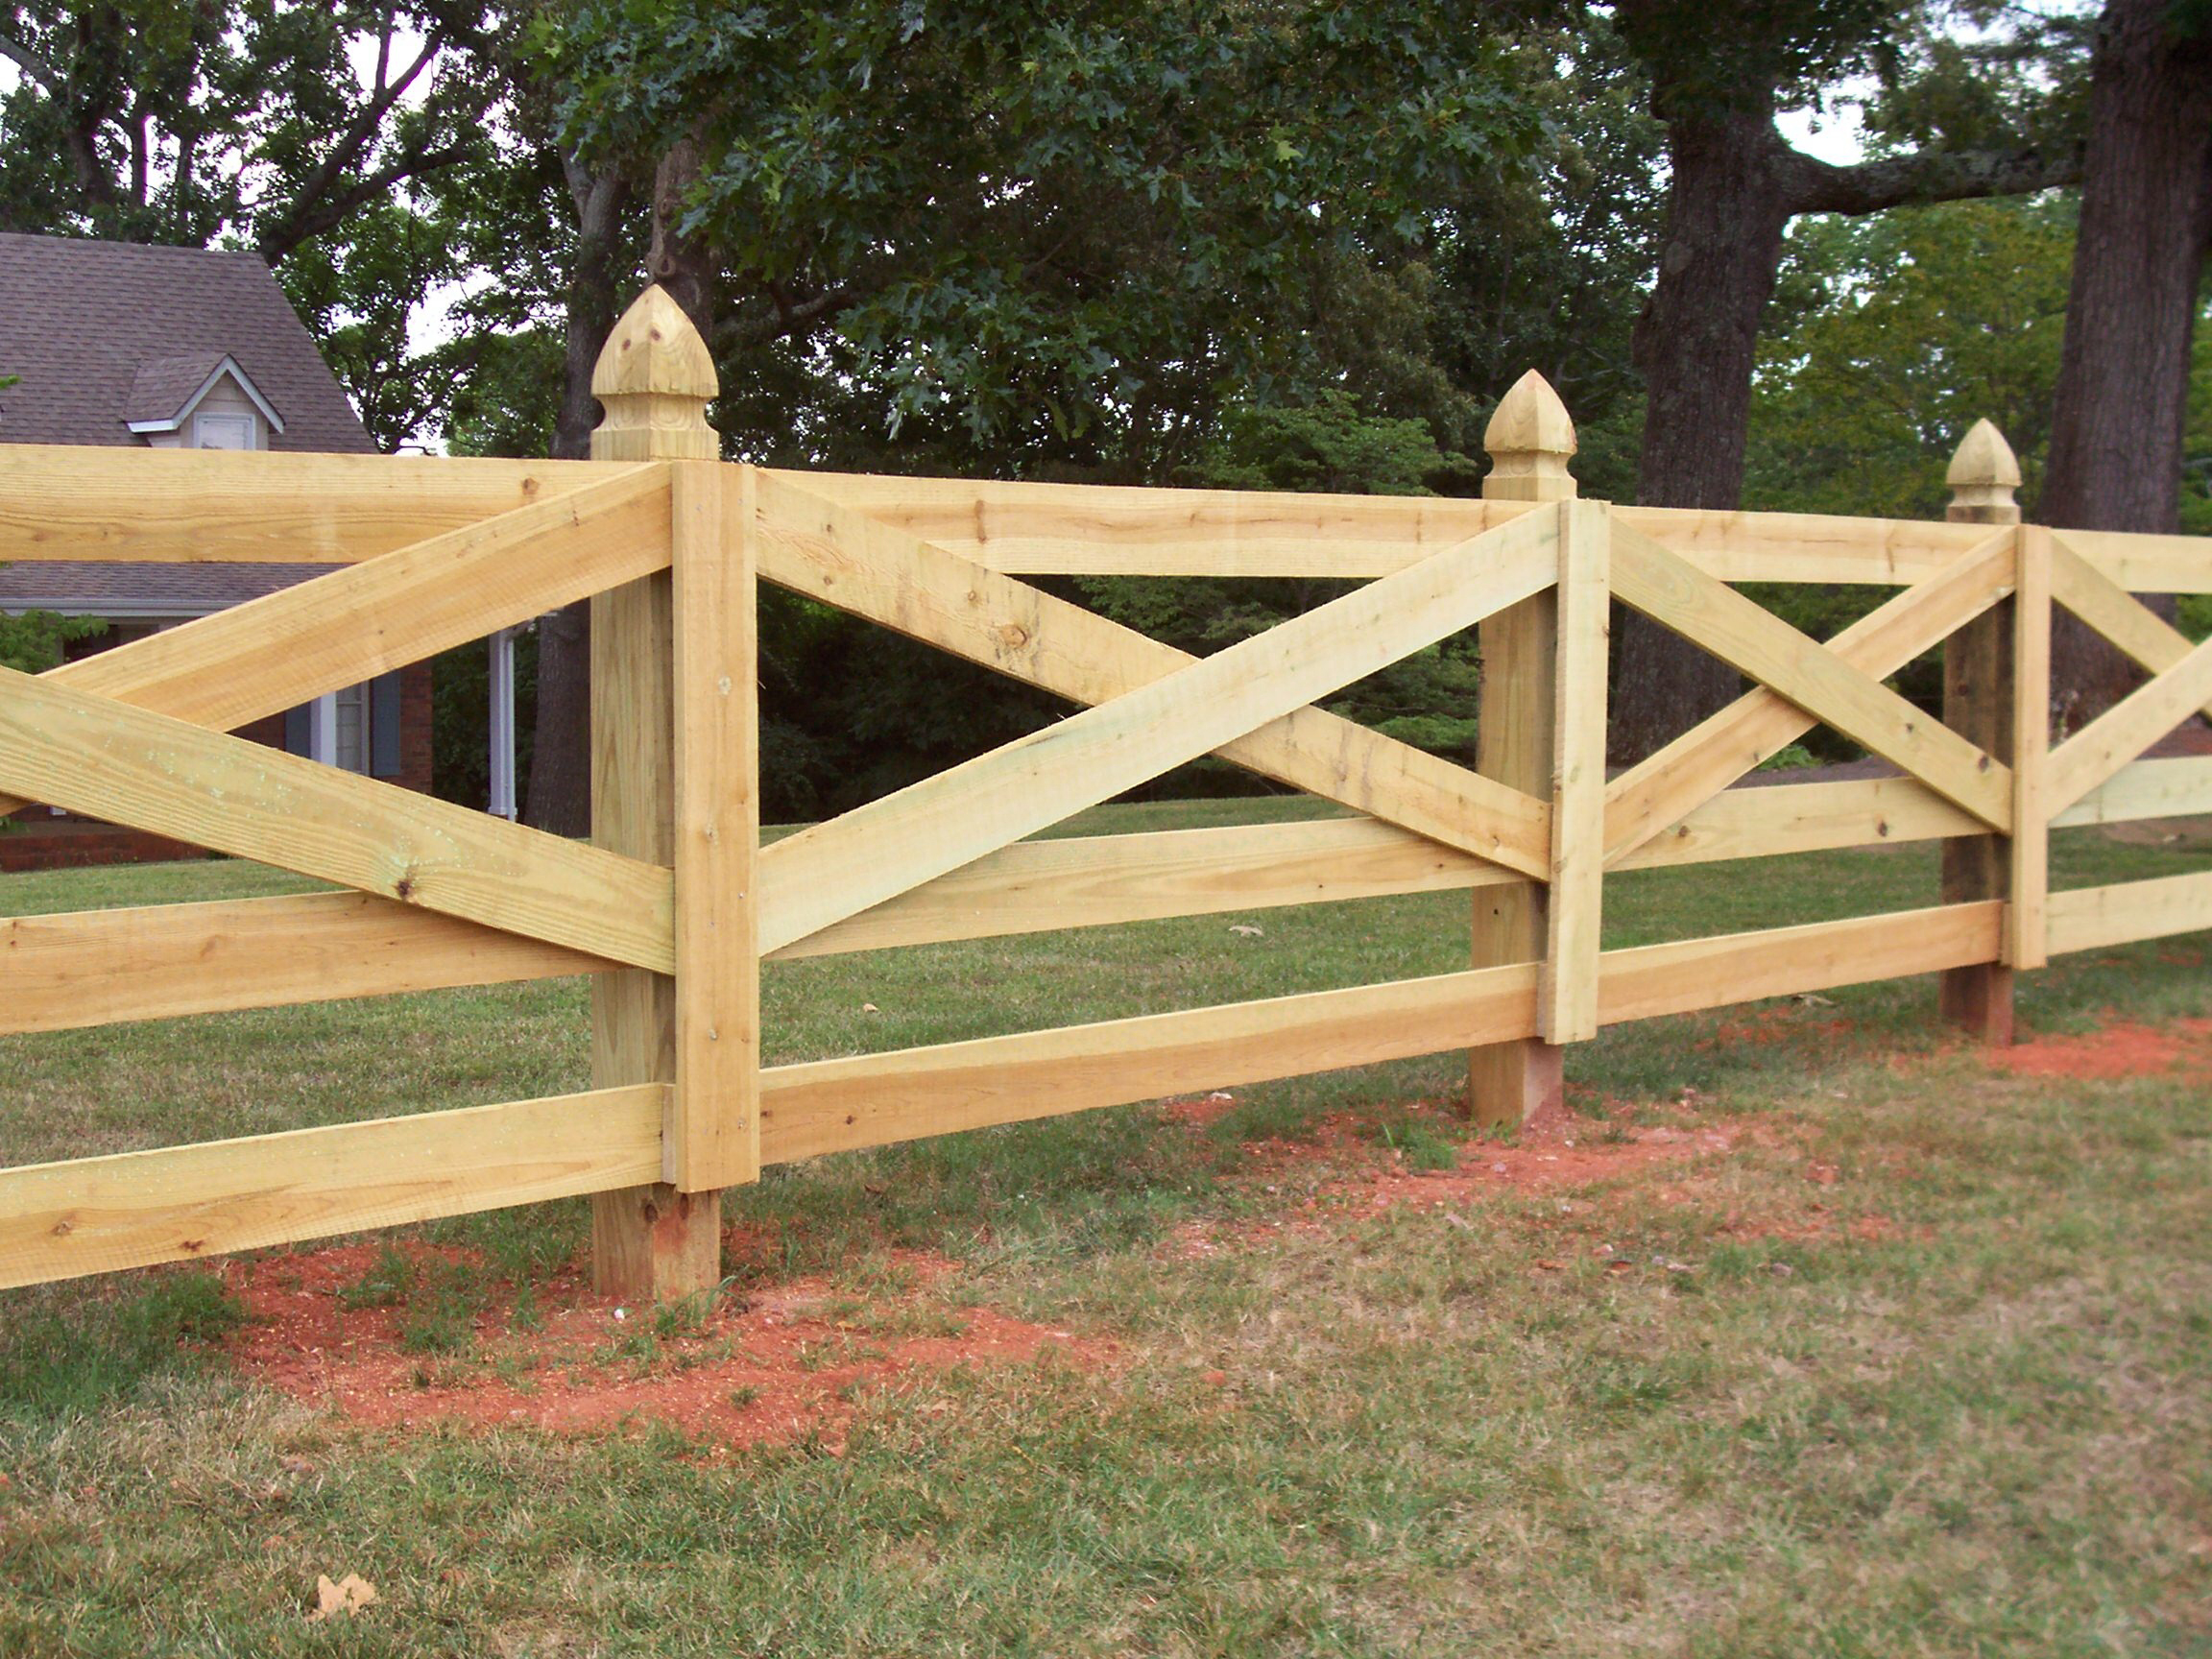 Wood Fences & Designs | Accurate Fence, Atlanta Fence Company |Wooden Farm Fence Post Tops